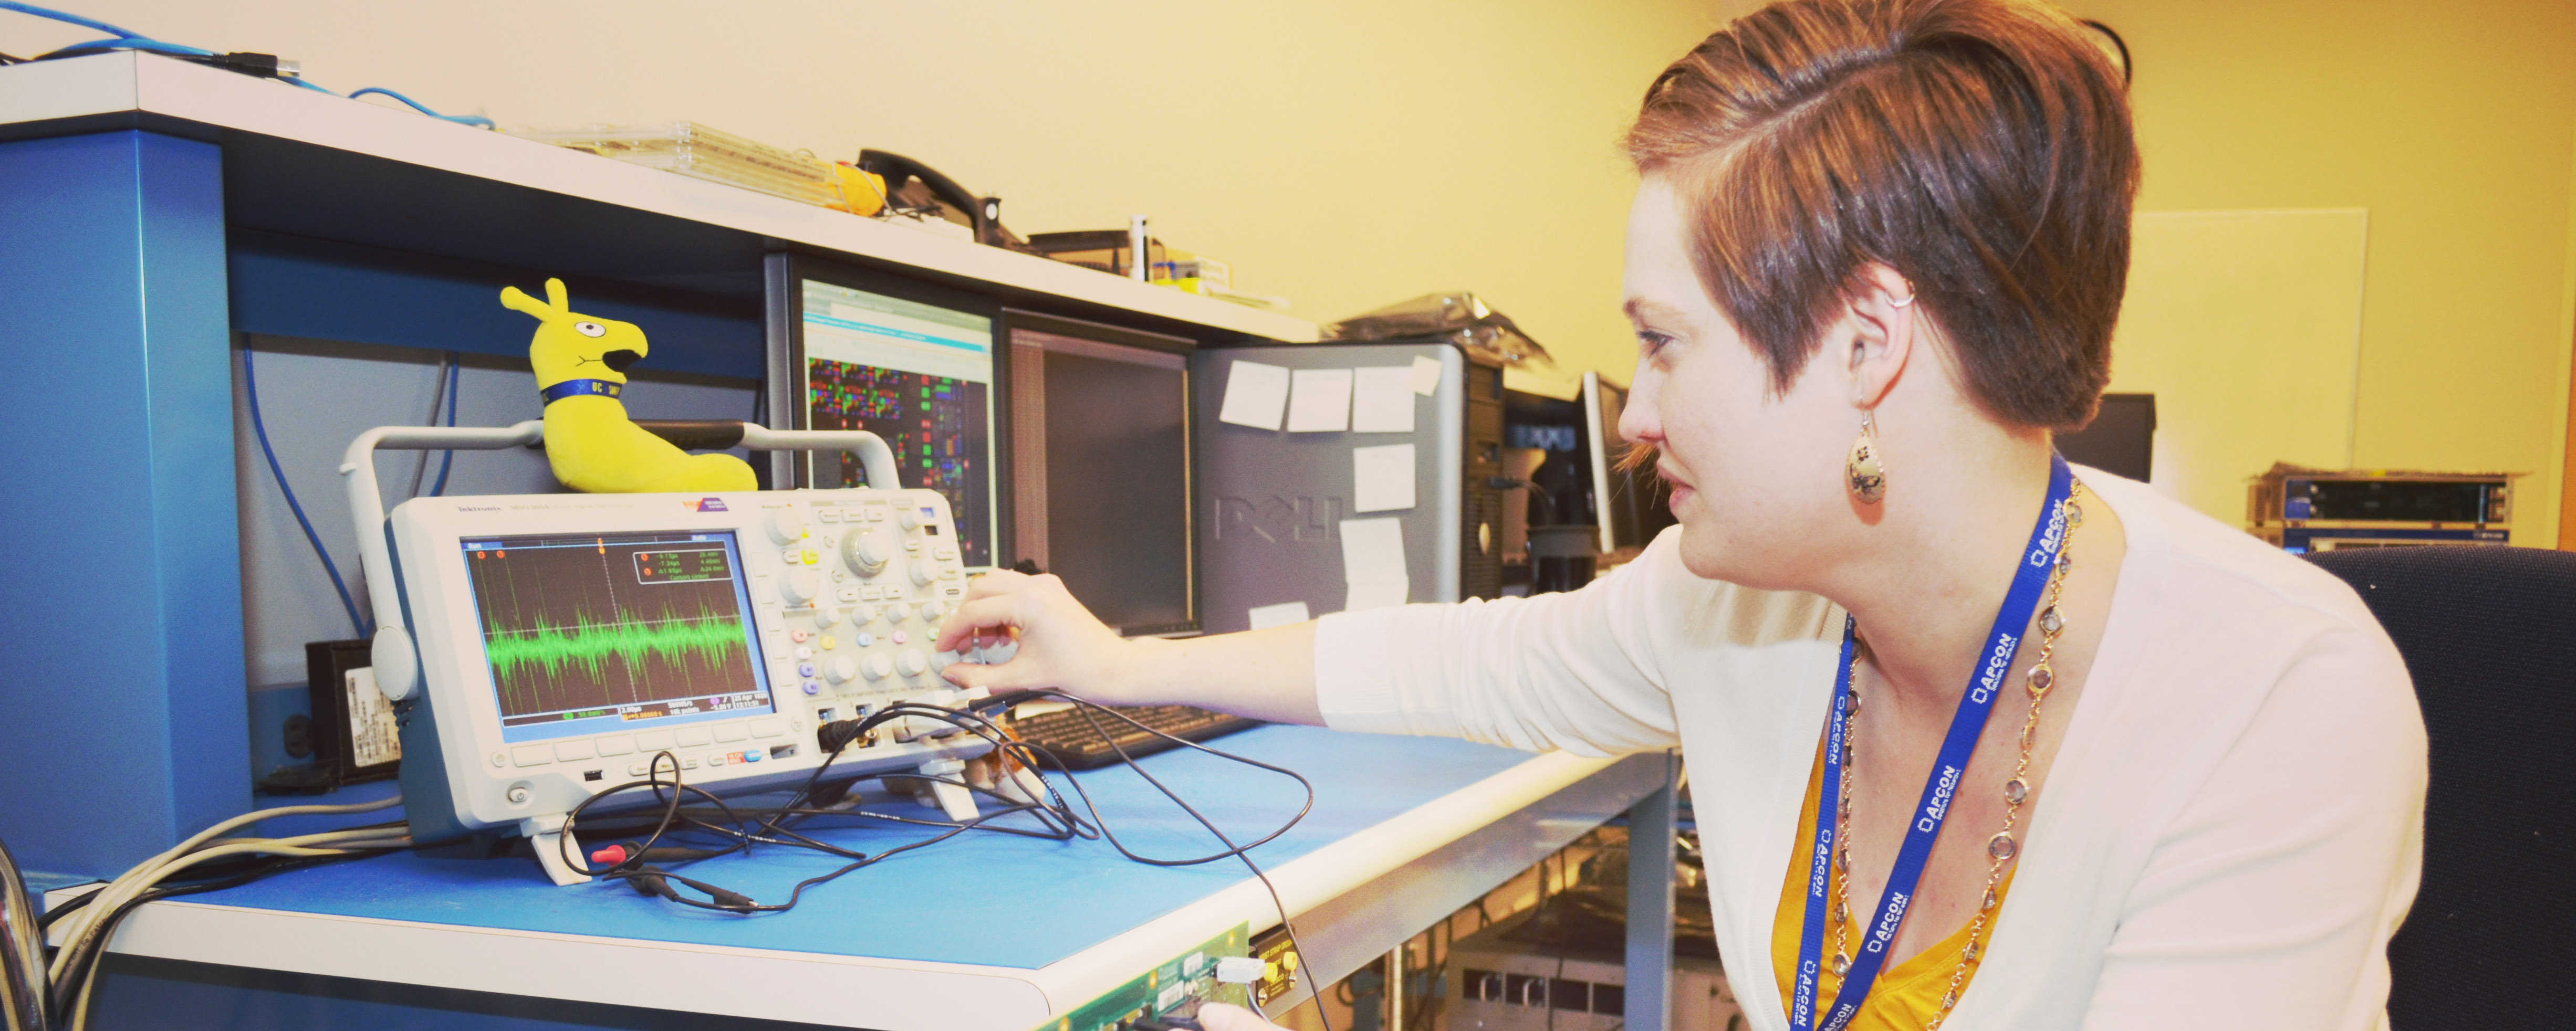 A student turning knobs on a computer